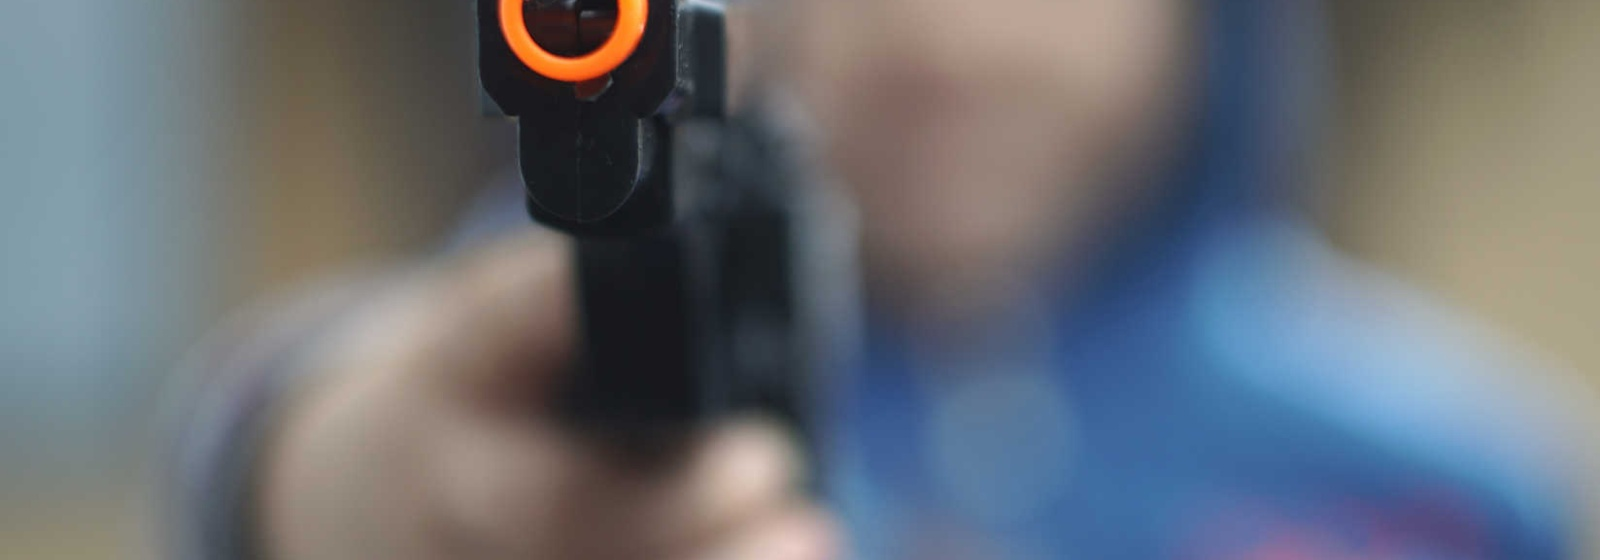 12-Year-Old Suspended for Having TOY Gun in Virtual Class